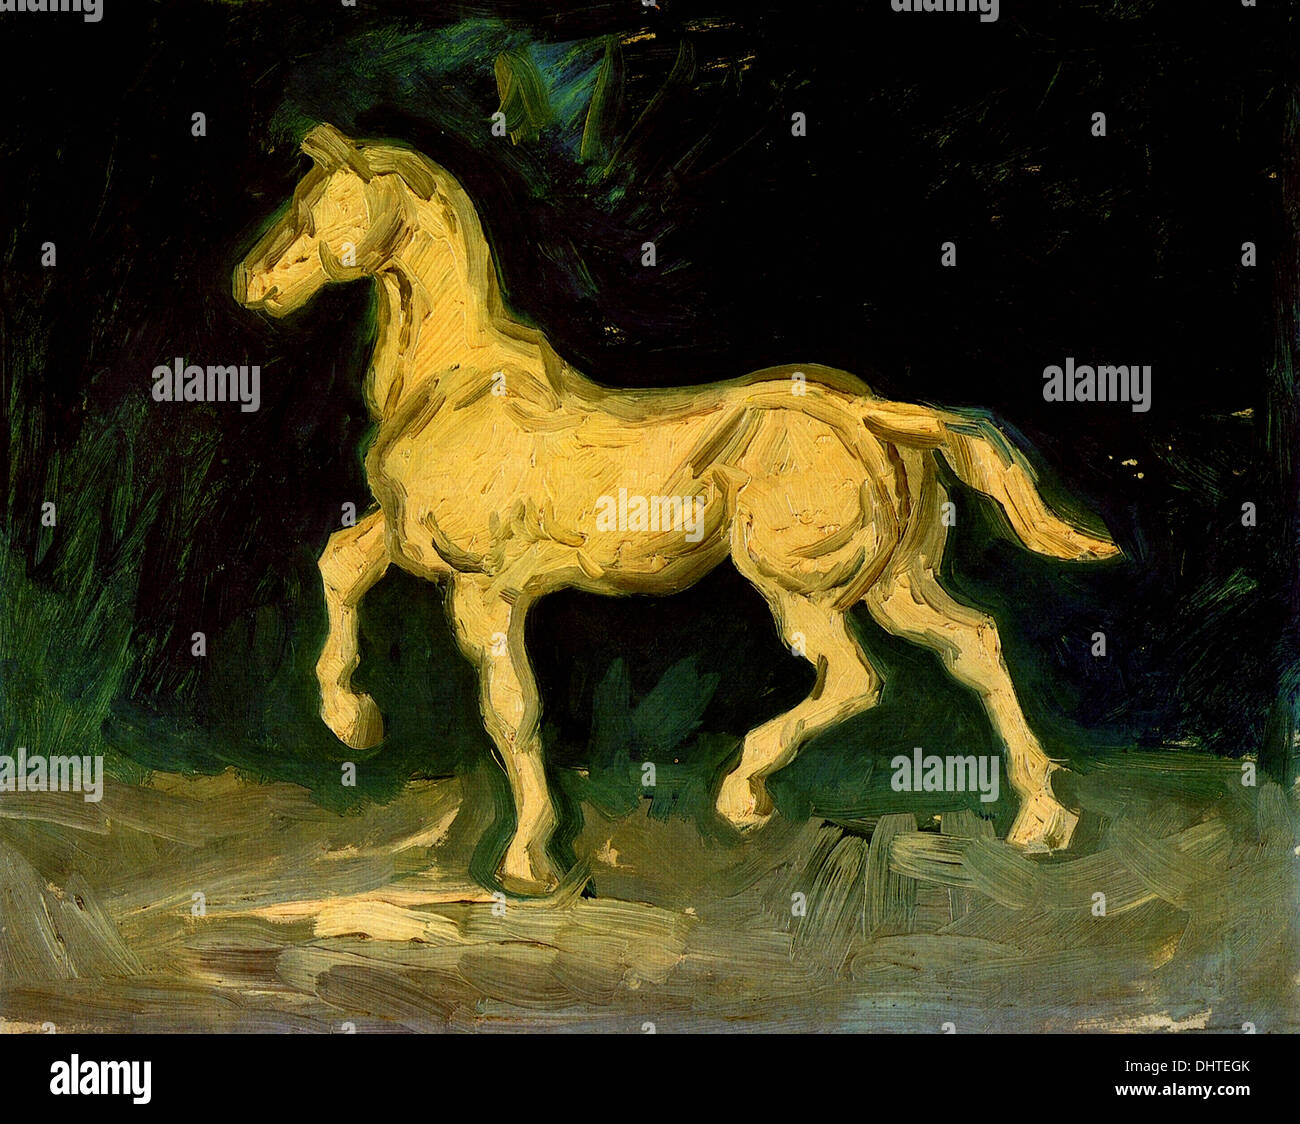 Plaster Statuette of a Horse - by Vincent van Gogh, 1886 - Stock Image